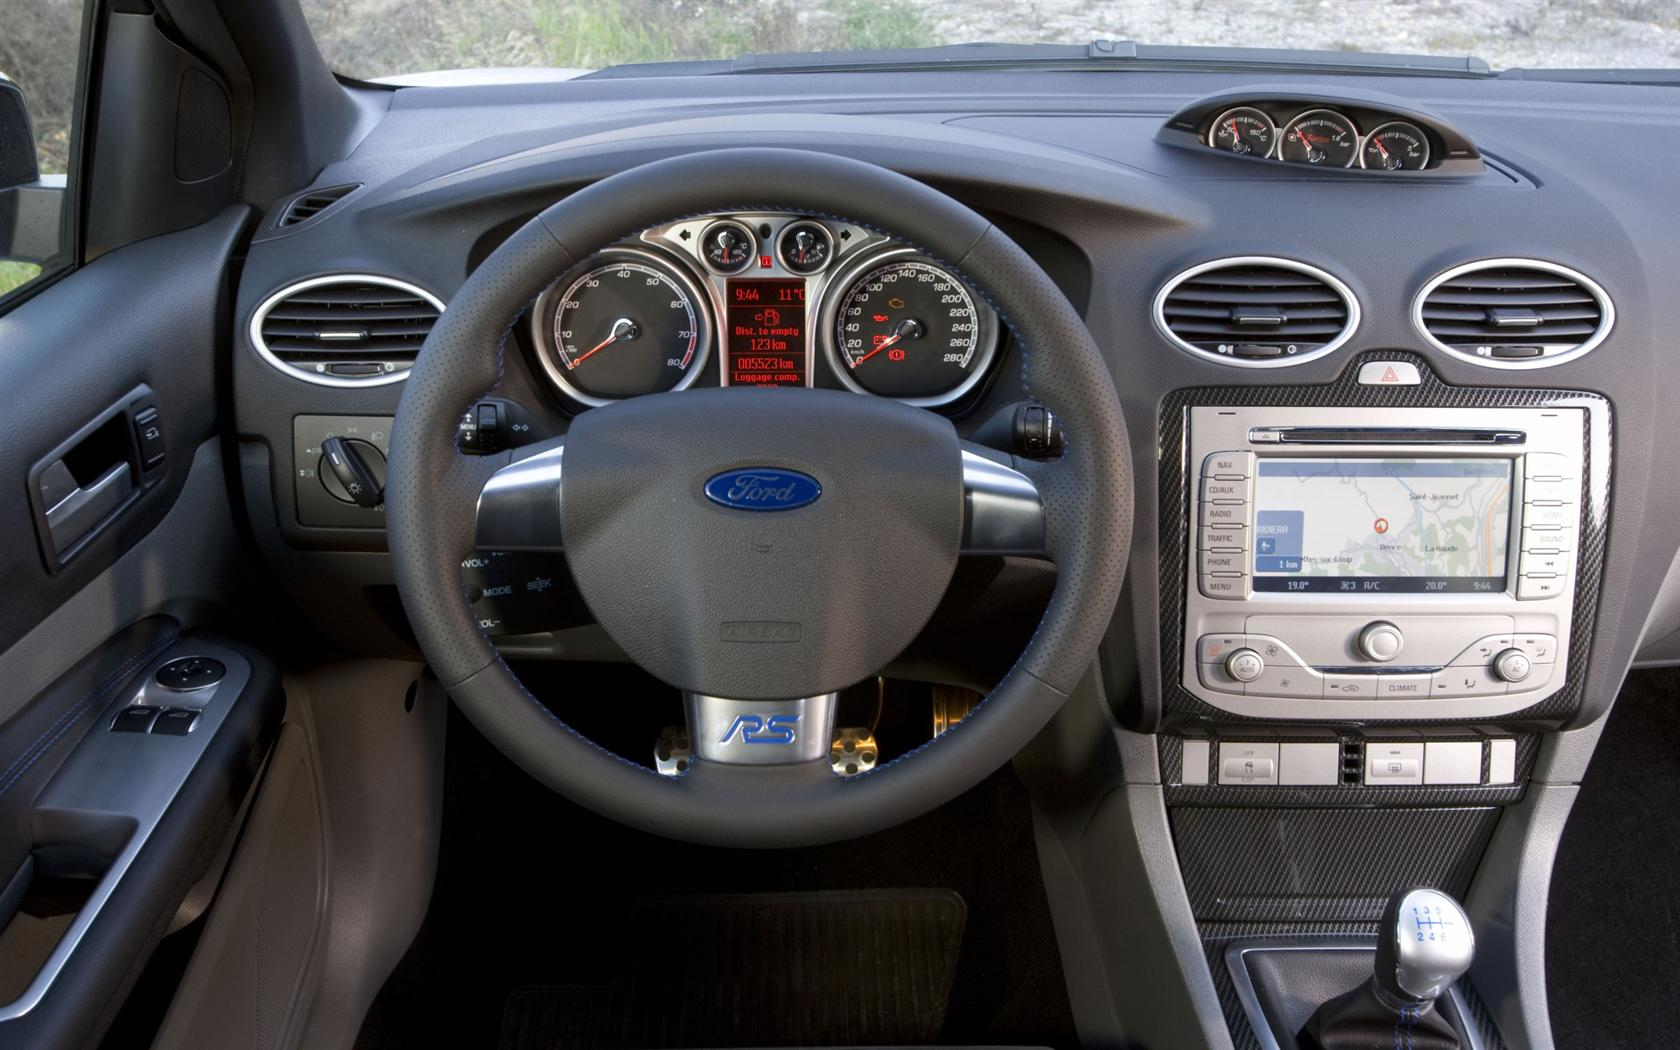 2015 Ford Fiesta Hatchback Wiring Diagram 2009 Ford Focus Information And Photos Momentcar